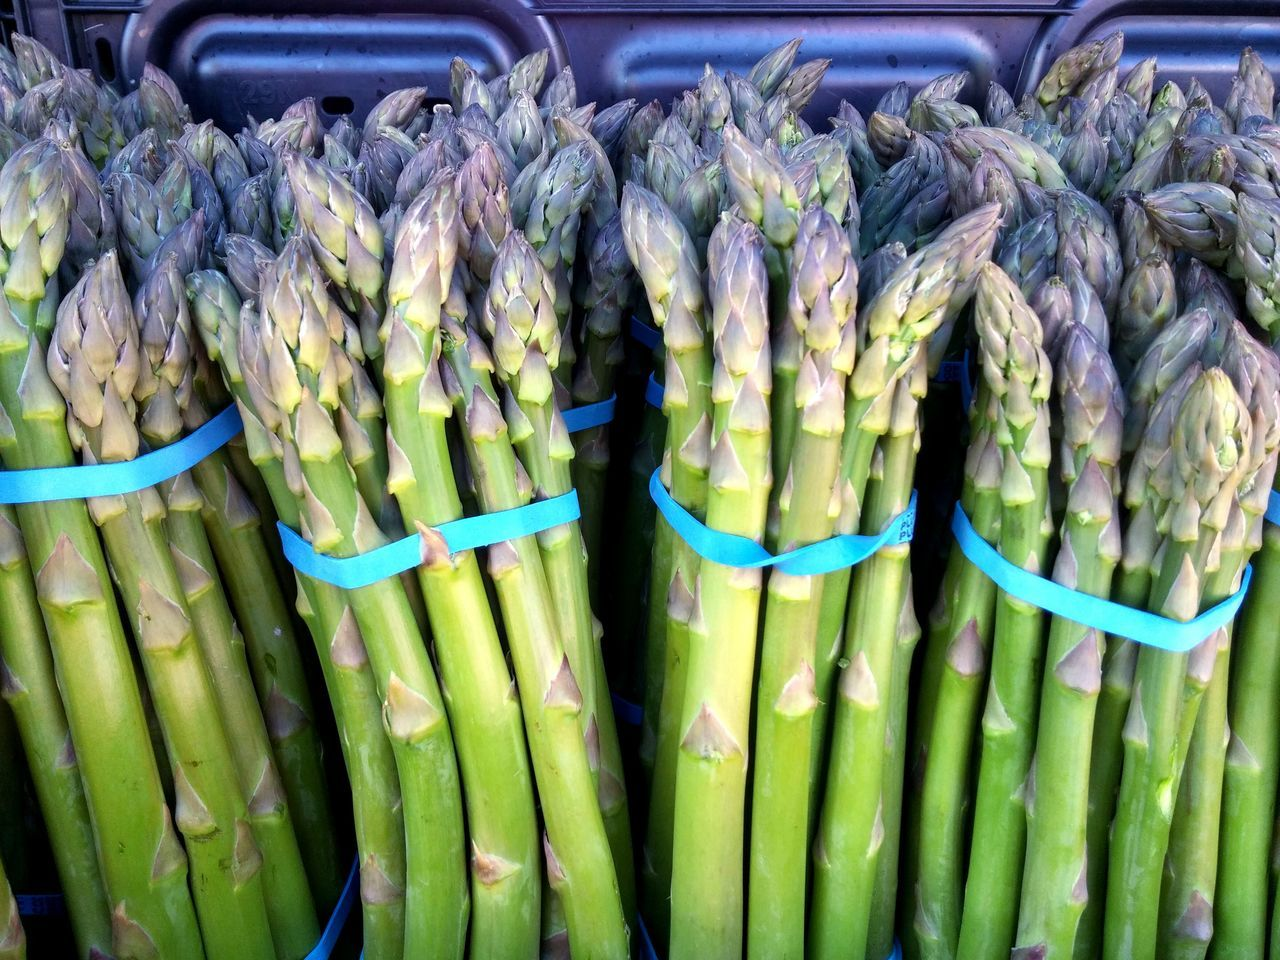 Farmstand Bounty Delicious Summer Farmers Market Healthy Eating All Natural Organic Food Health Food Summer Harvest Organic Healthy Spring Harvest Healthy Lifestyle Asparagus Vegetables Veggies Green Vegetables Food Tasty Freshness Color Palette